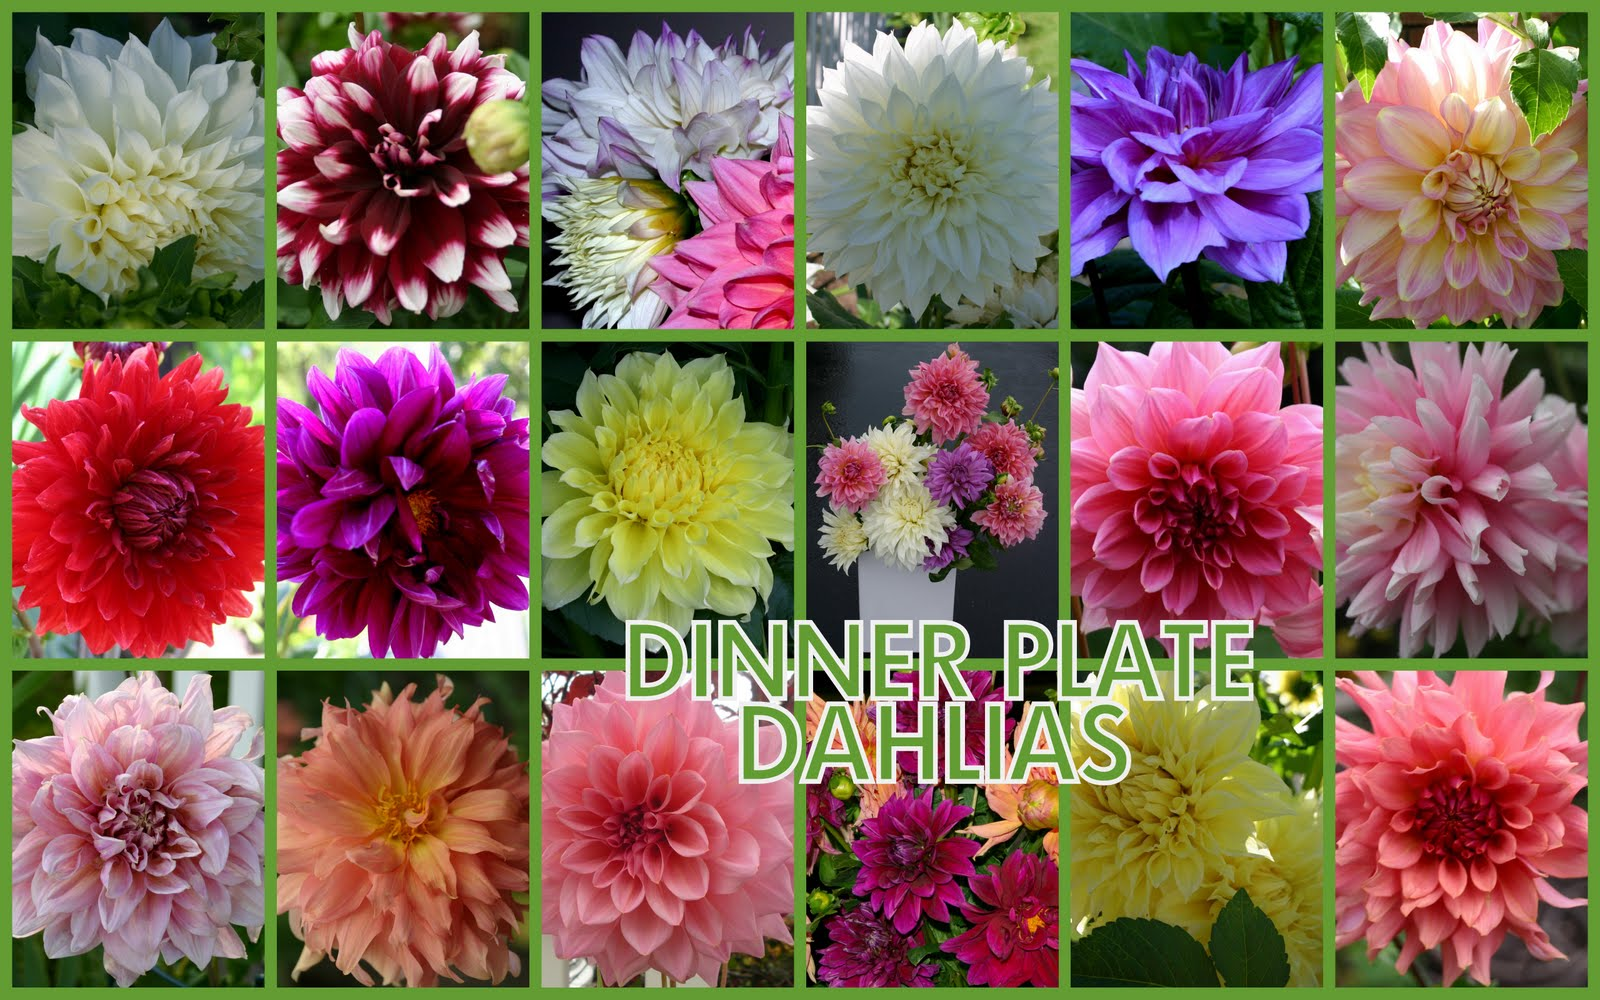 Dinner Plate Dahlias Sowing The Seeds